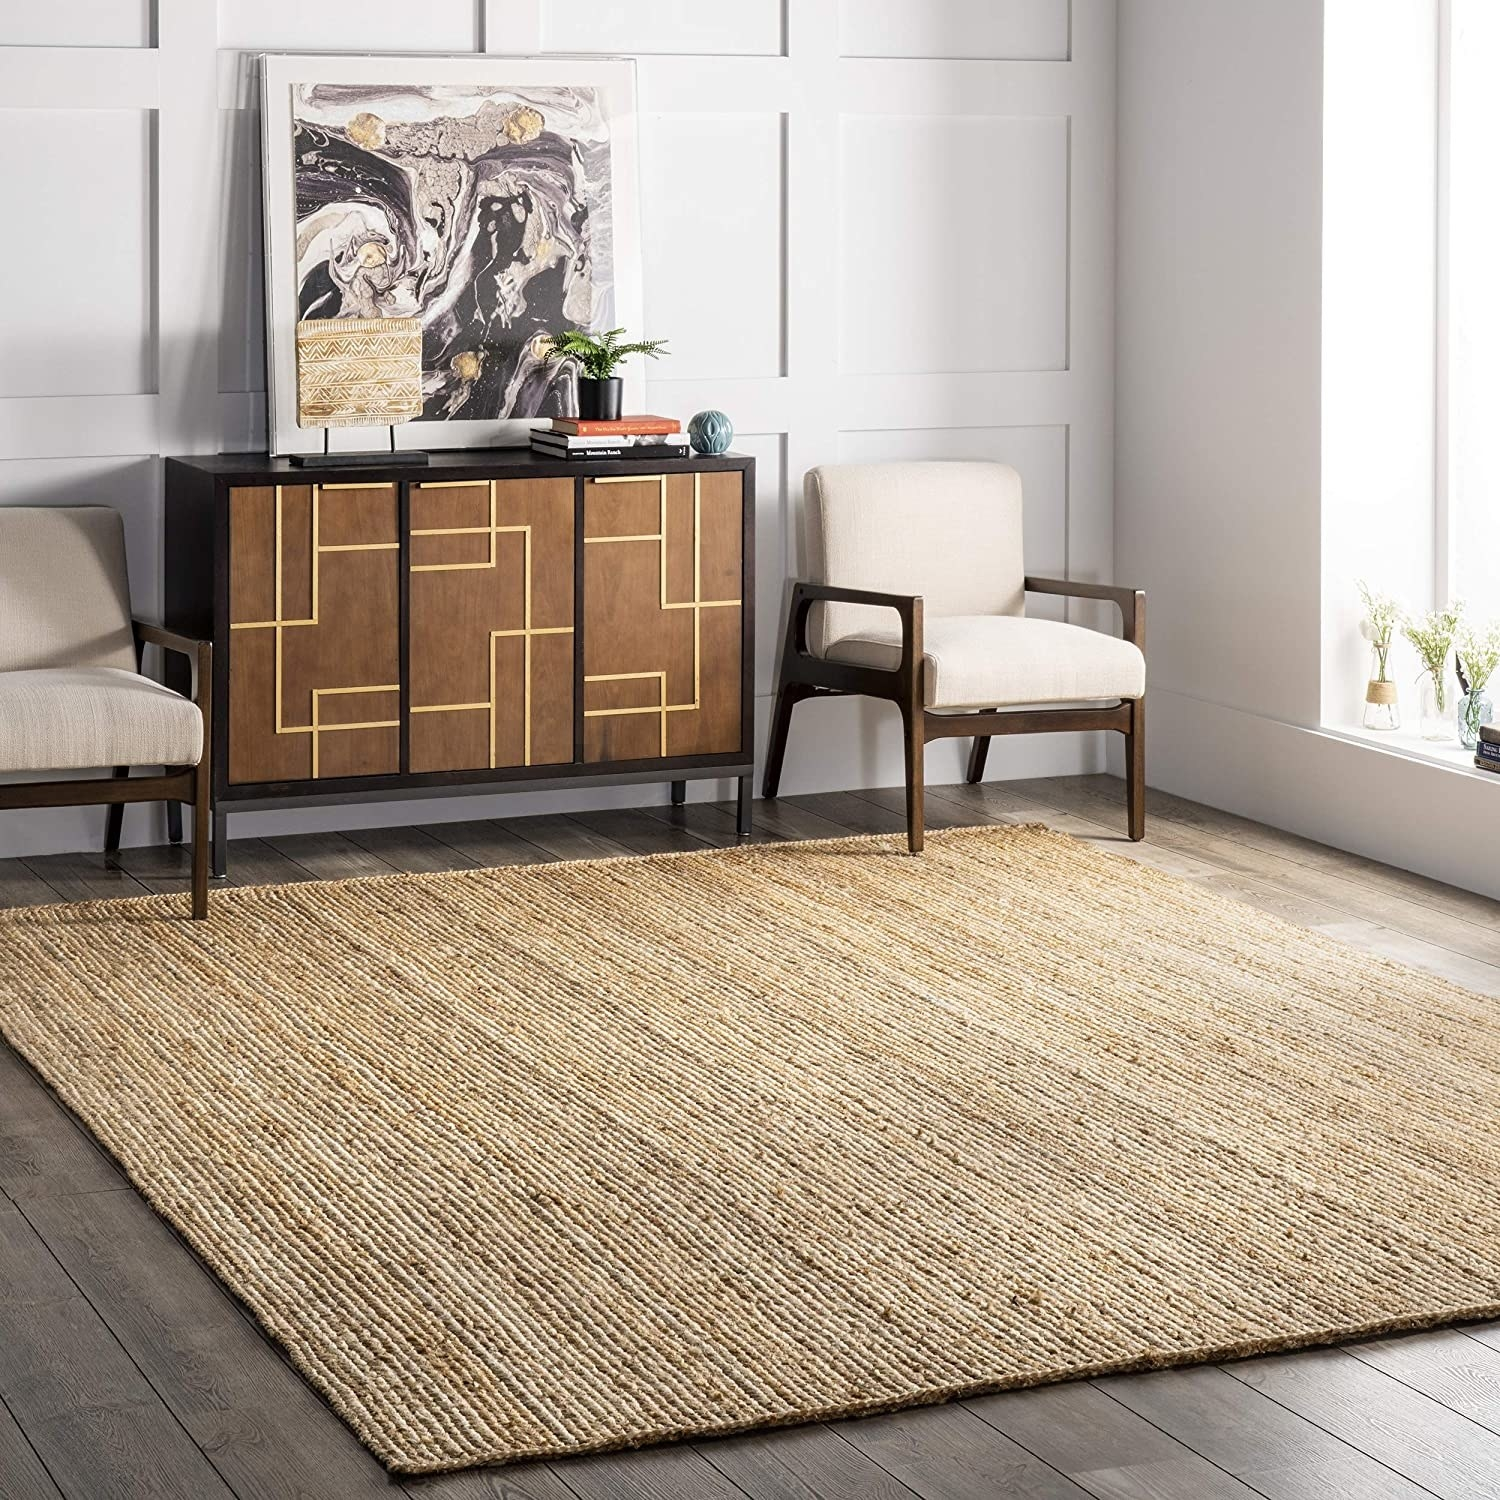 A tan woven area rug in a living room